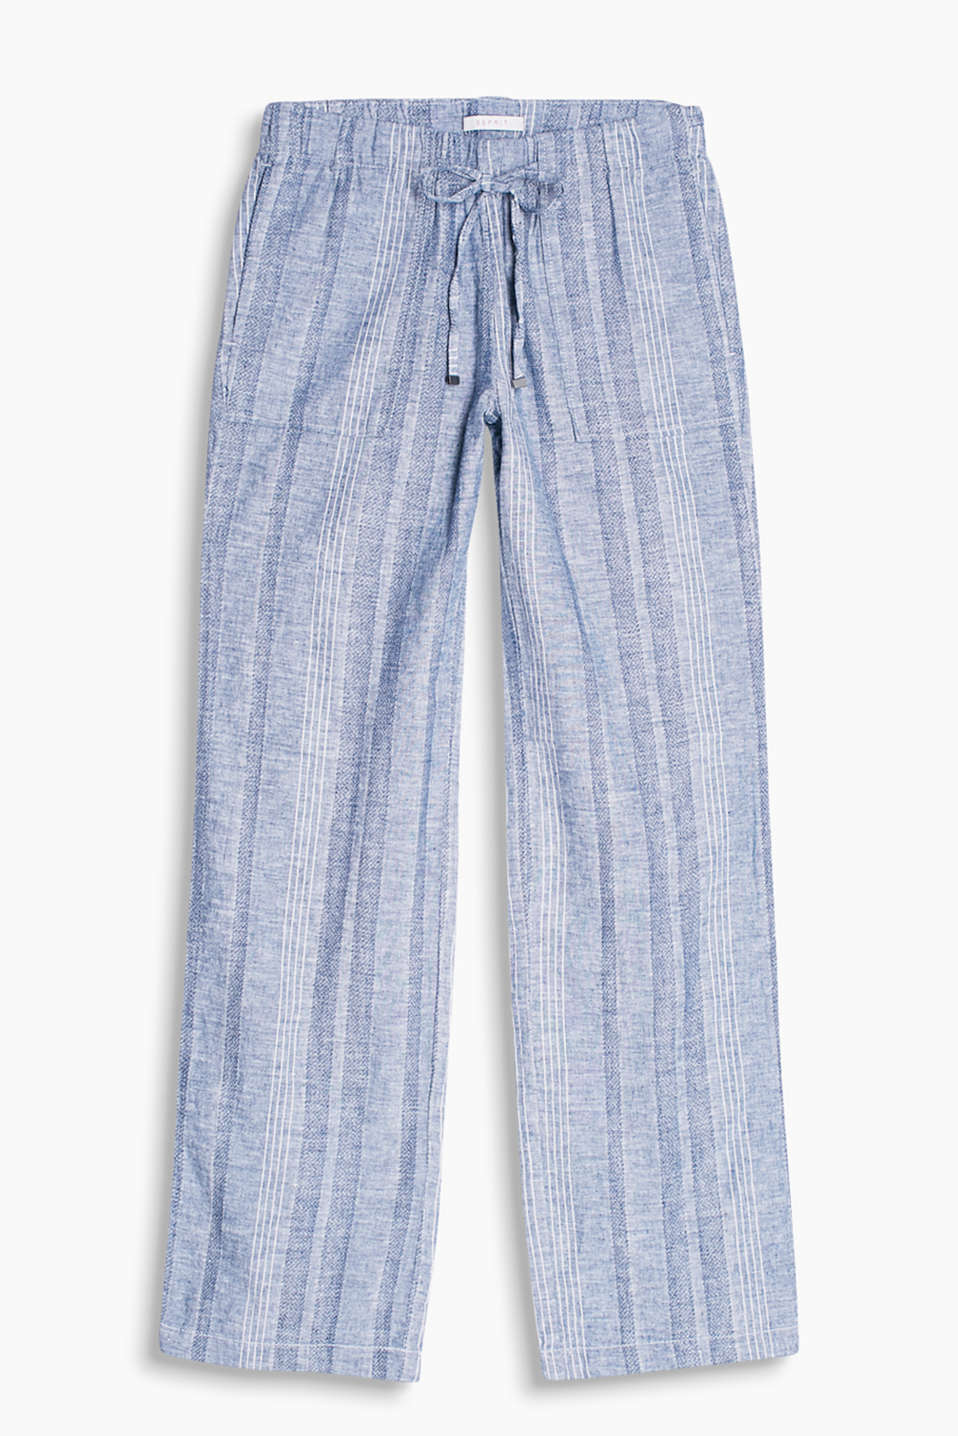 Airy trousers in a cool linen blend with tantalising textured stripes